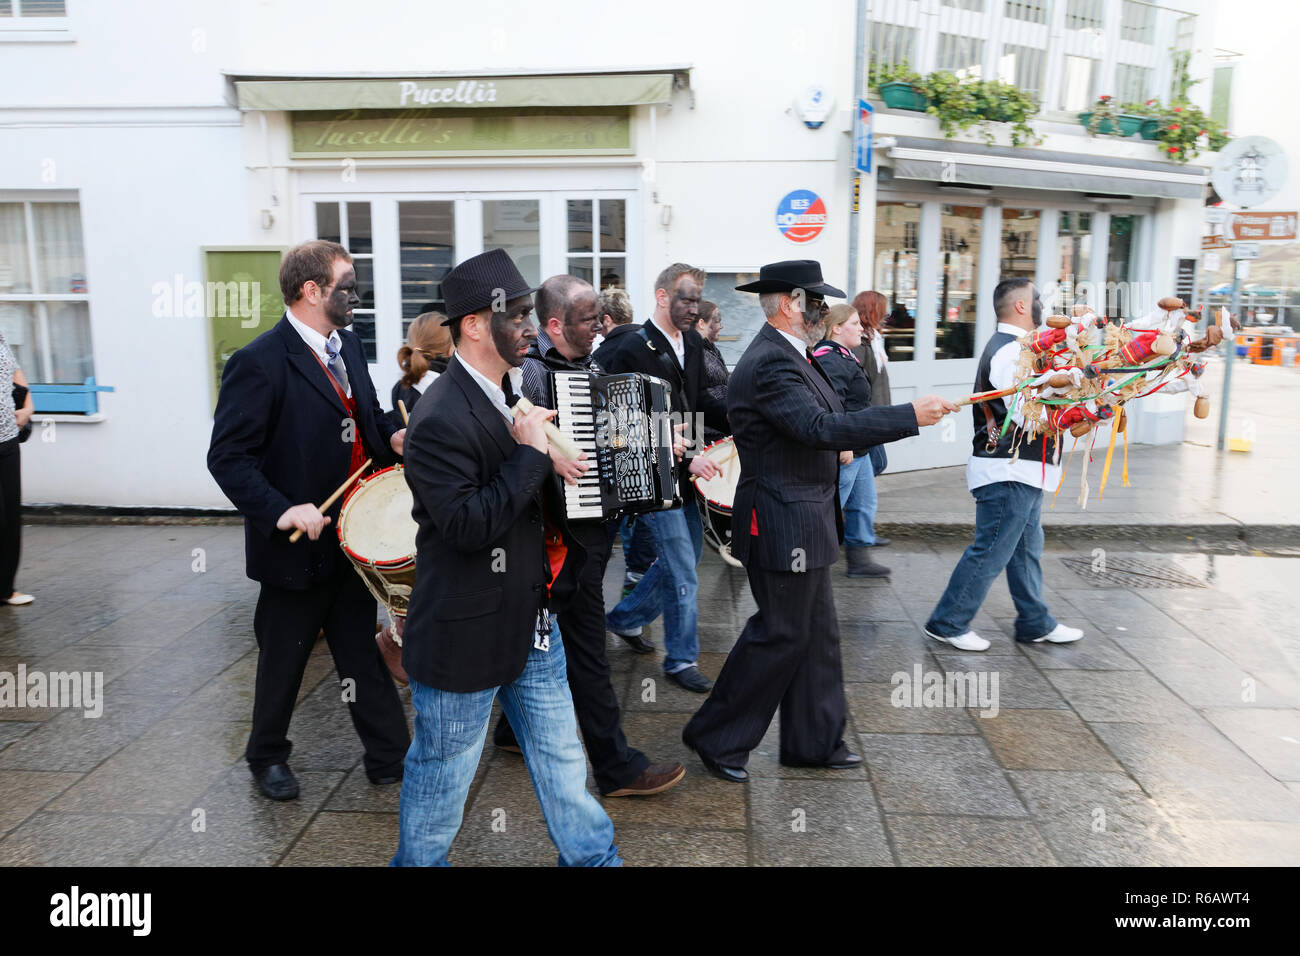 Mummers Day sometimes known as Darkie Day, ancient traditional parade with music and dancing through the streets of the town.Padstow,Cornwall, UK. - Stock Image